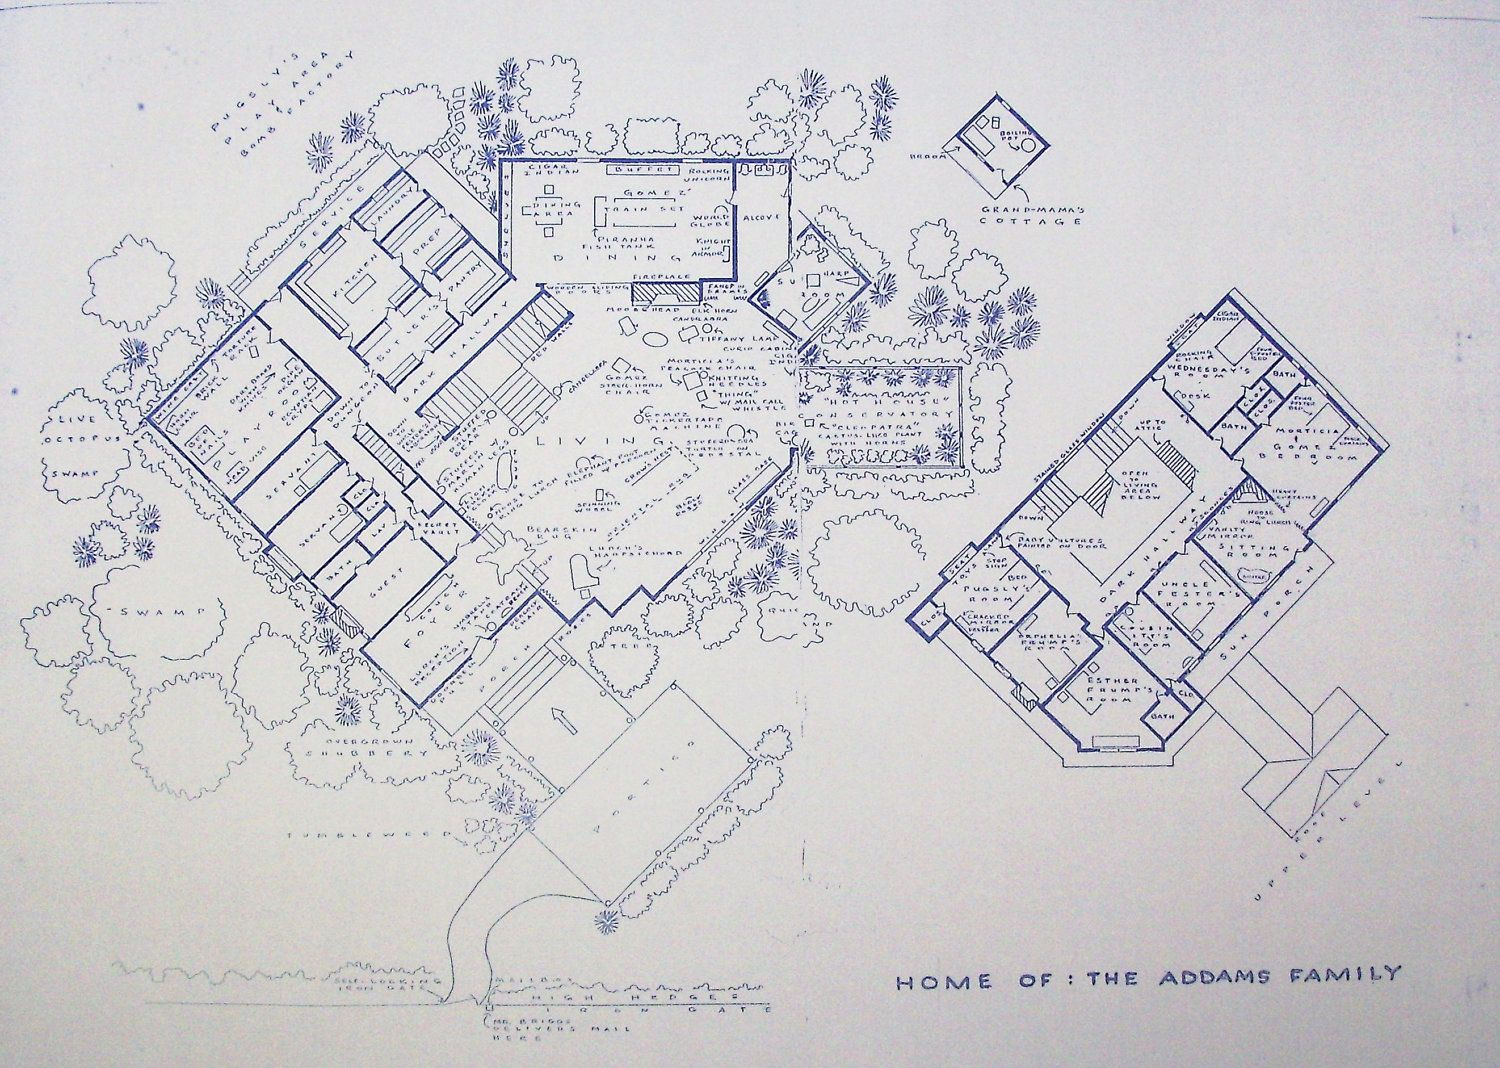 Wonderful 24 x 36 blueprint of the addams family house made the house from addams family tv show blueprint classic second empire with a tower and mansard roof malvernweather Images